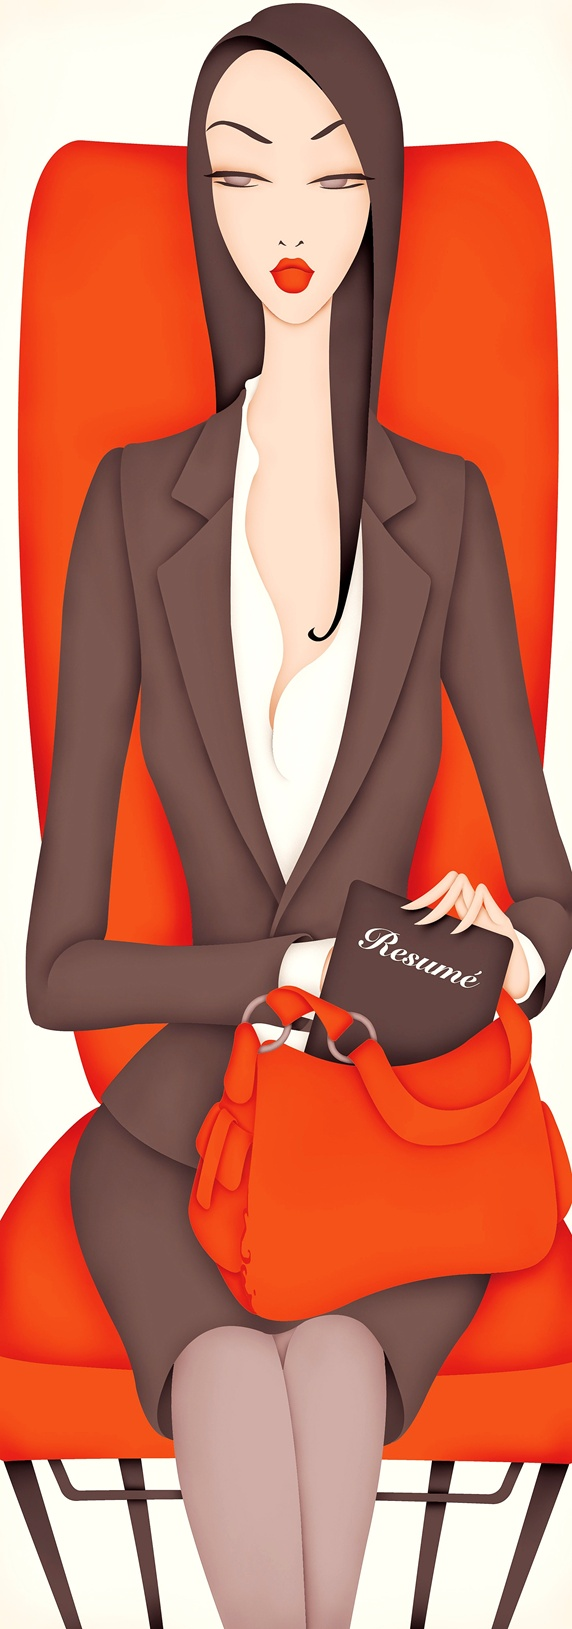 Well-dressed woman holding resume